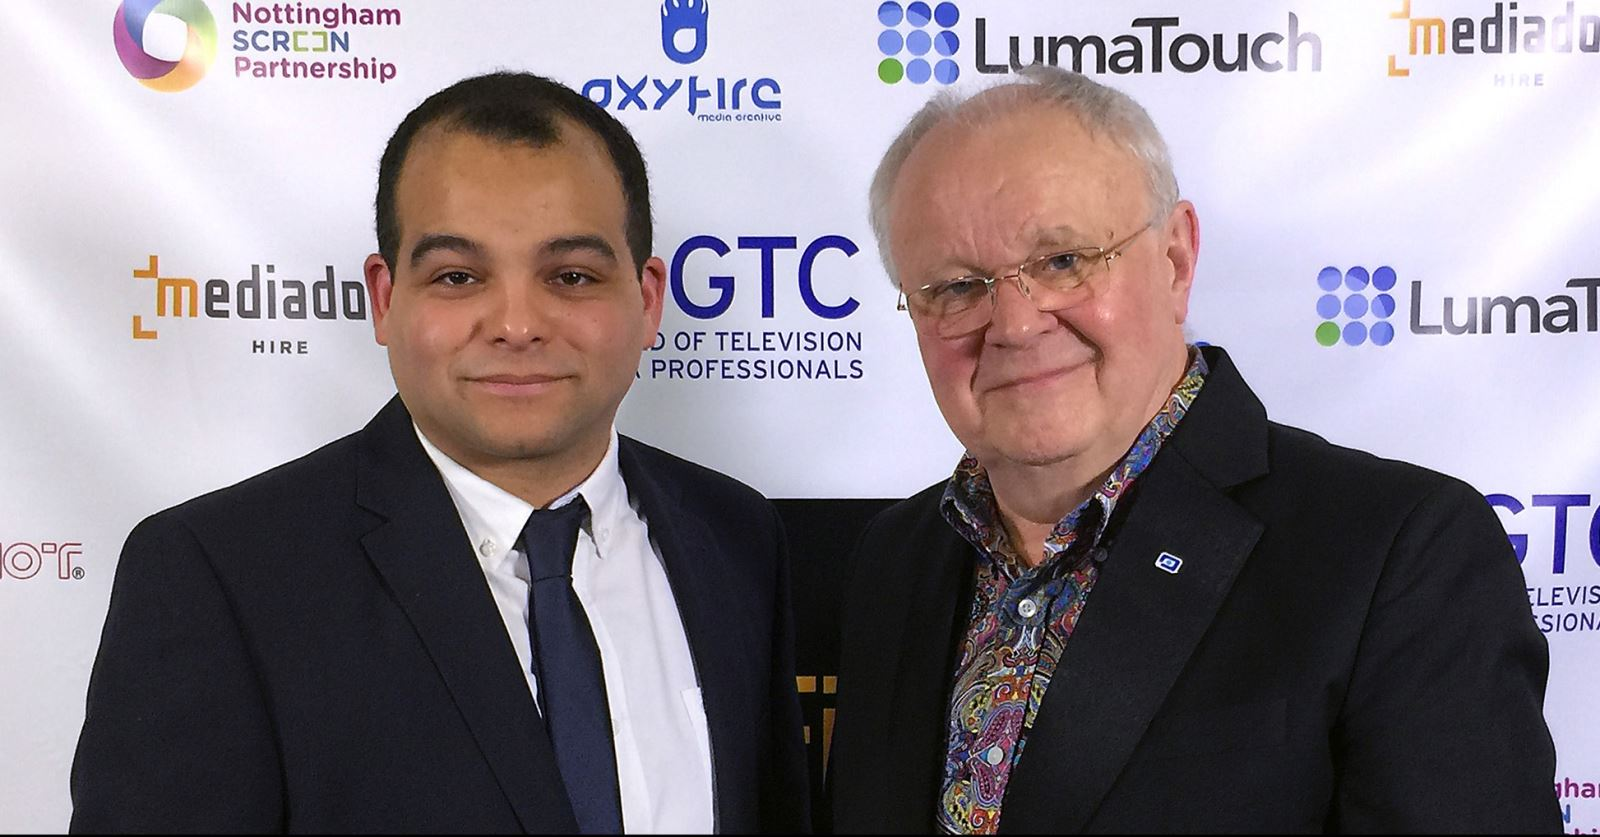 GTC President John Henshall (r) with Alex Doherty, Founder of the International Short Film Show Awards